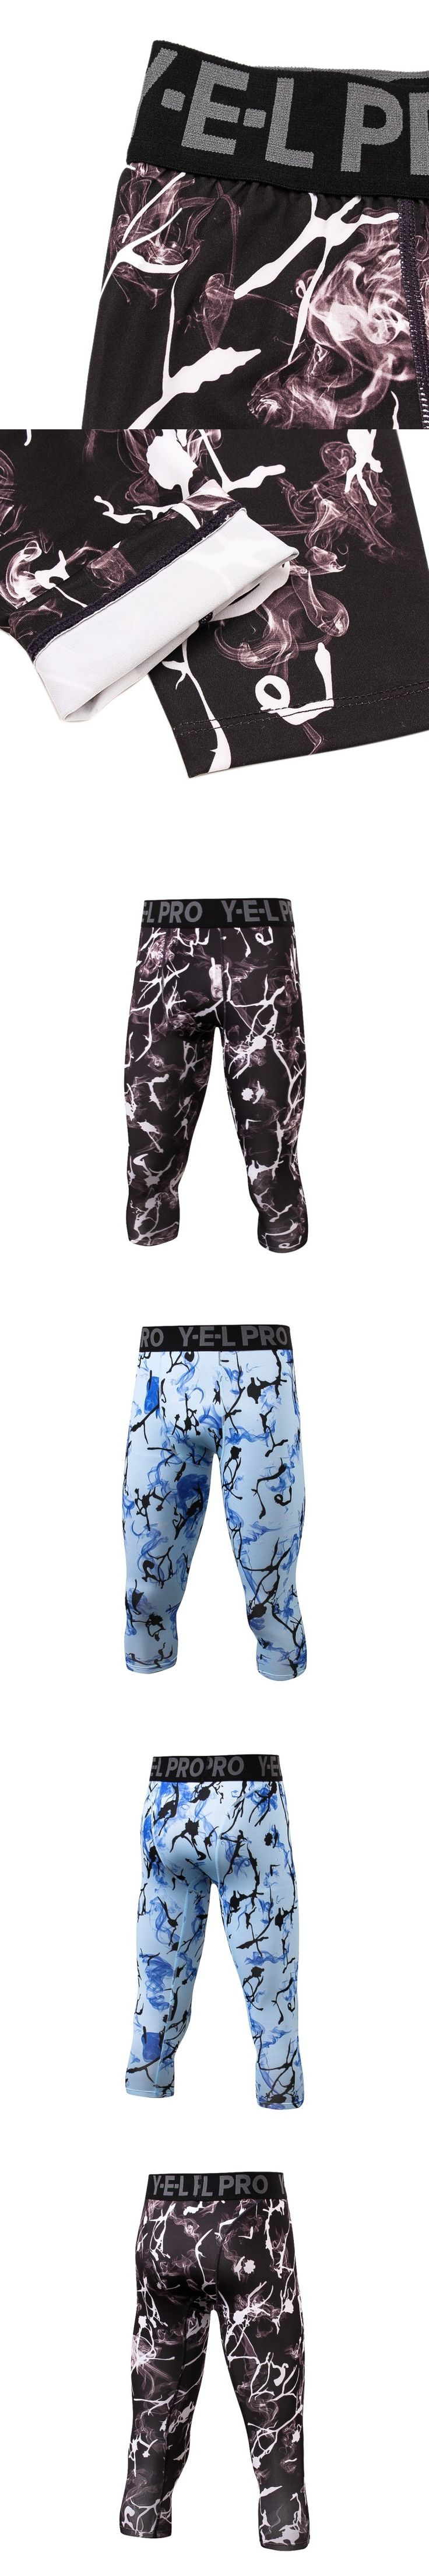 2017 New Brand Fitness Work Out Printed Men Compression Pant Men's Bodybuilding Fitness Pant Legging S3